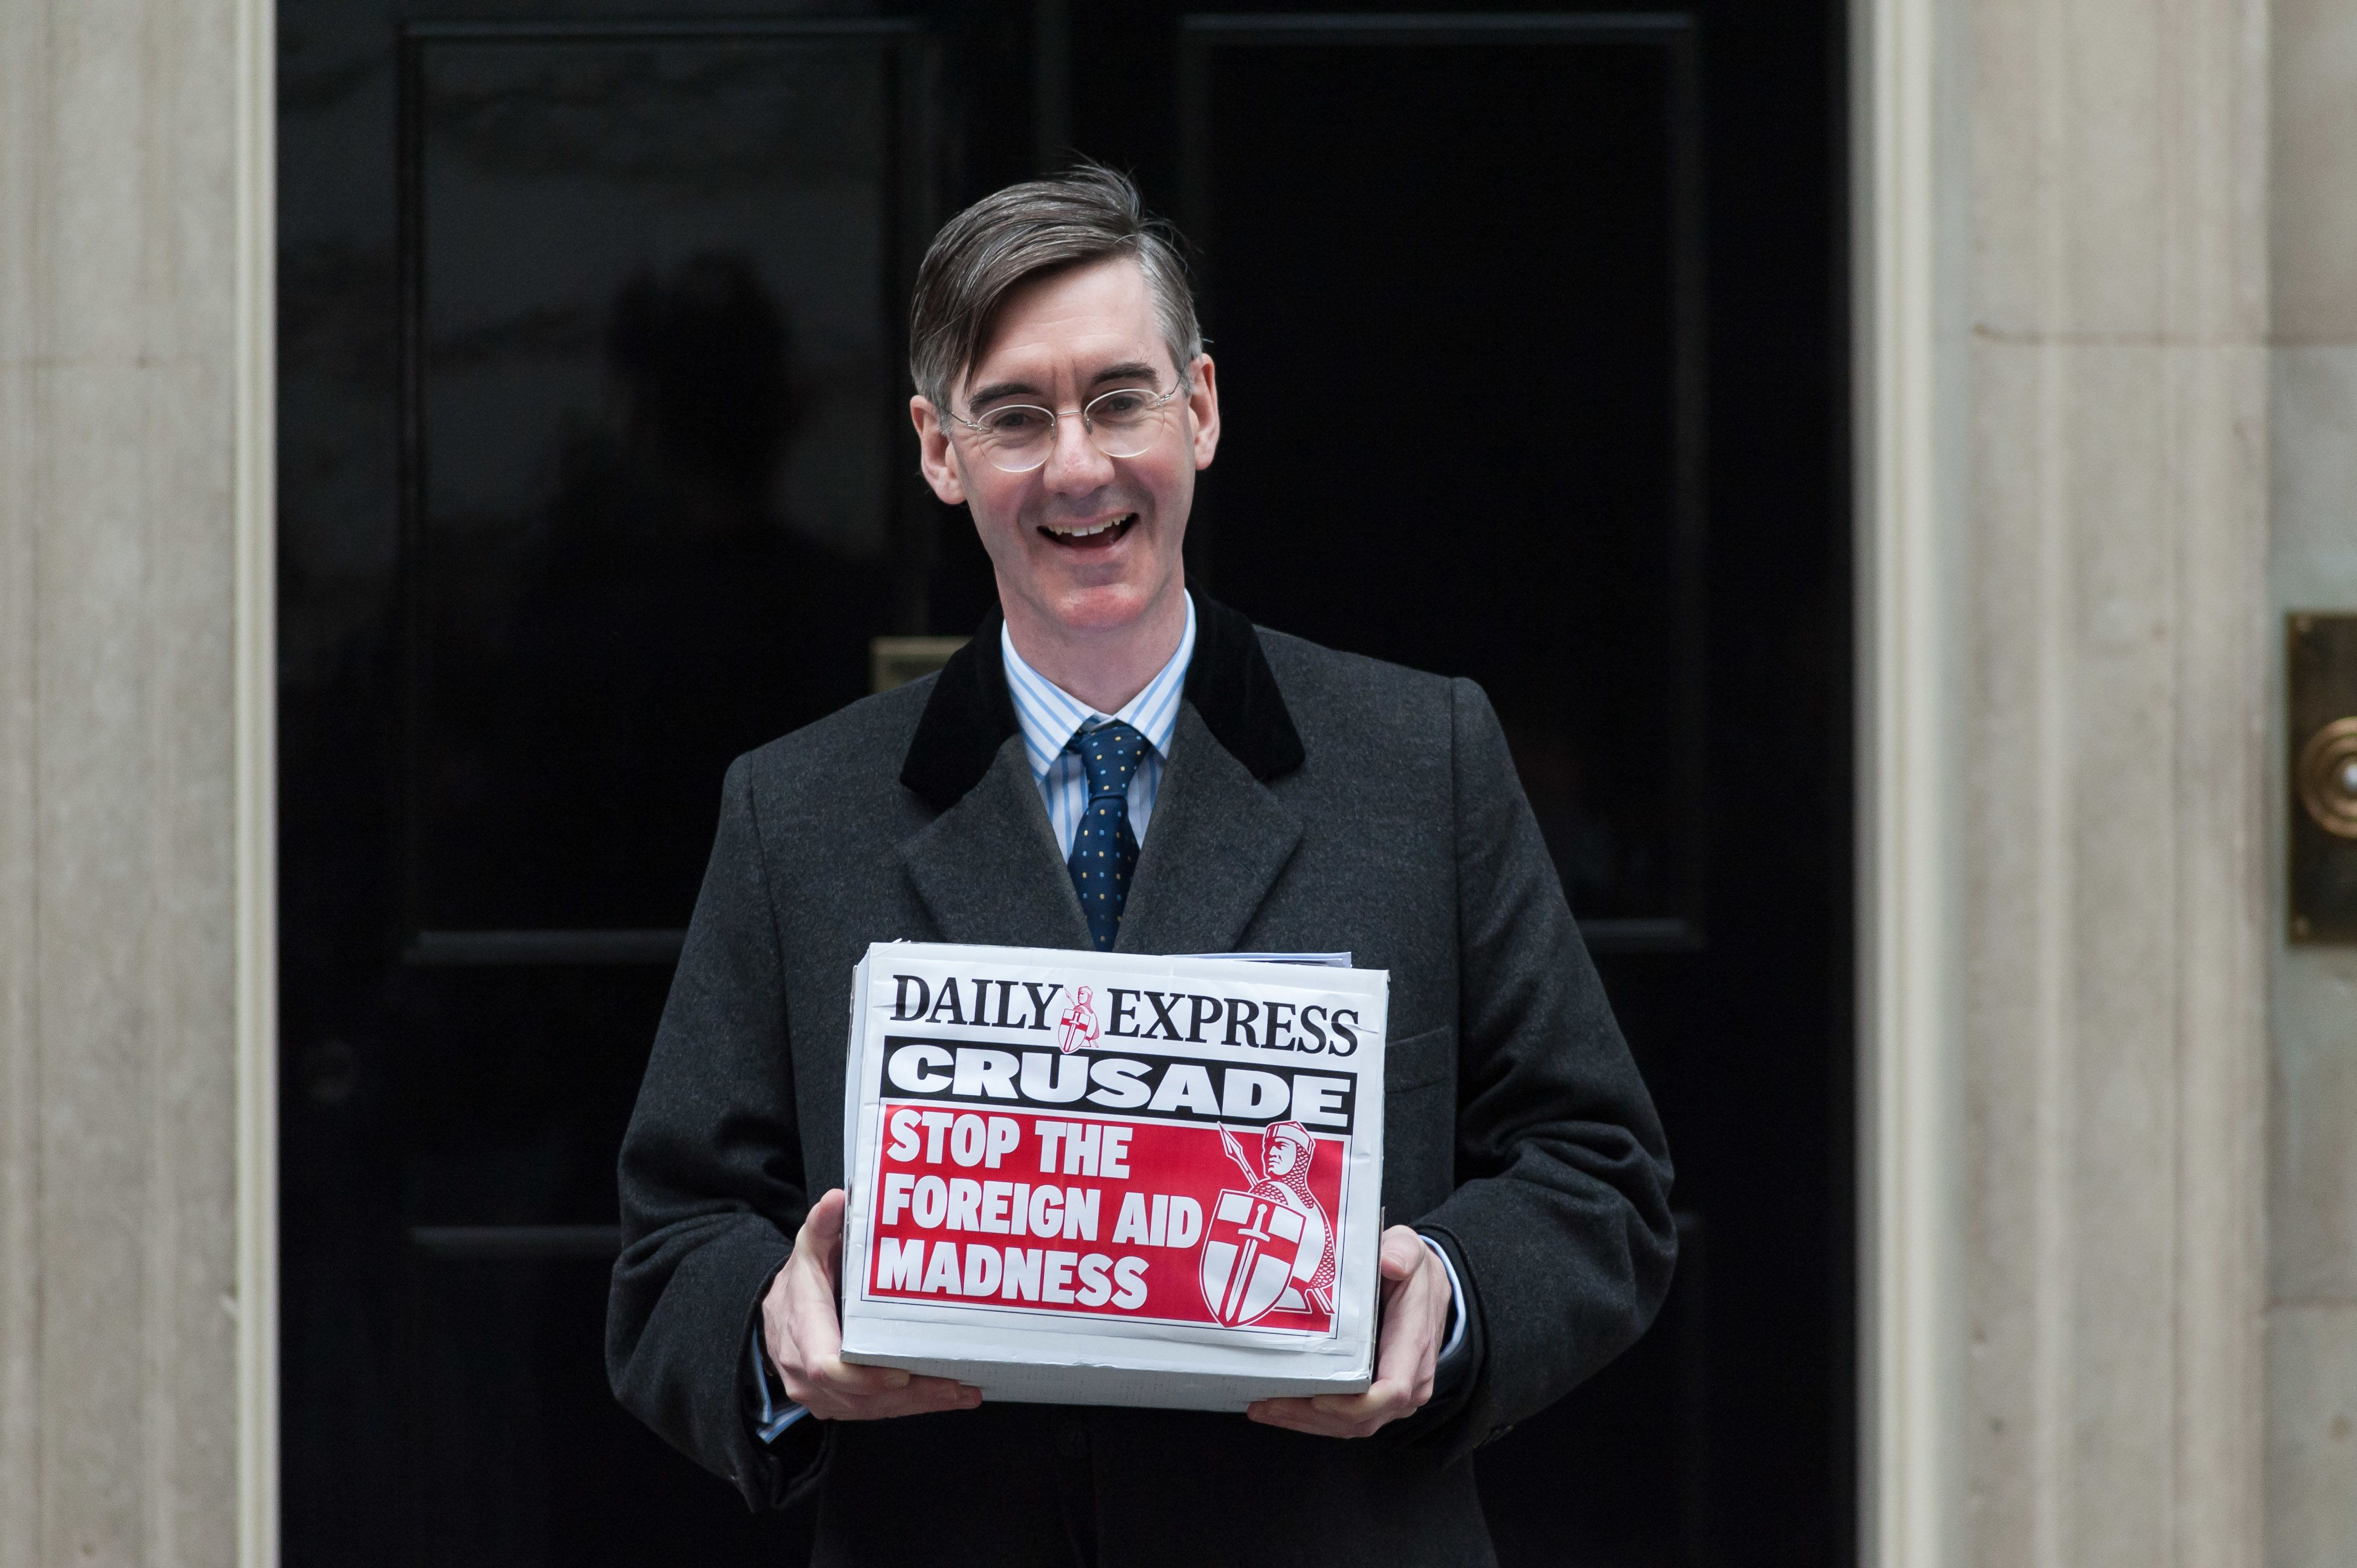 <strong>Jacob Rees-Mogg</strong>